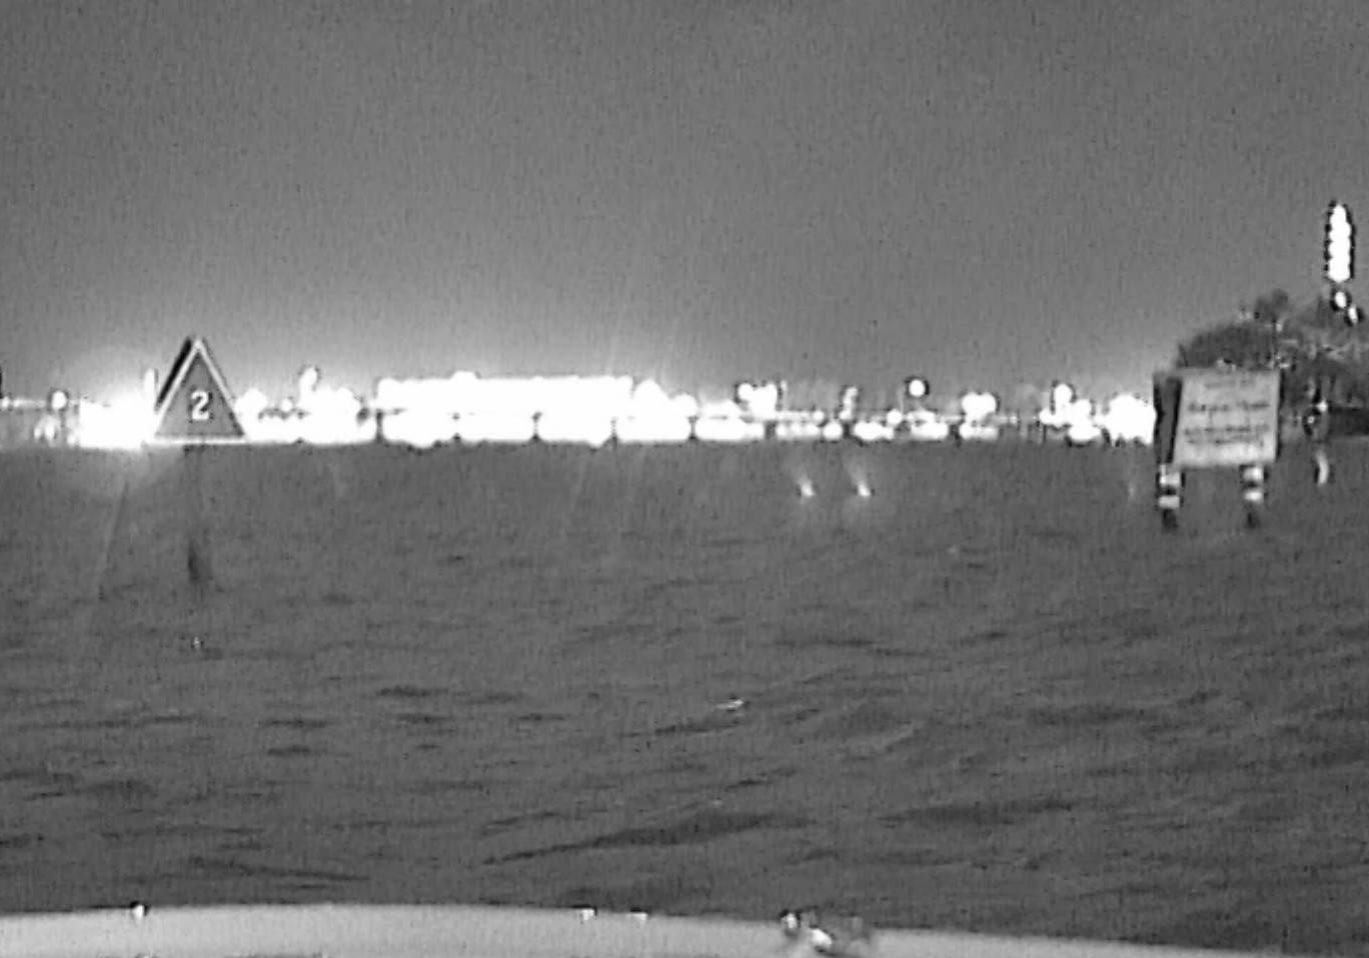 Nite Track Night Vision moonless night Biscayne Bay